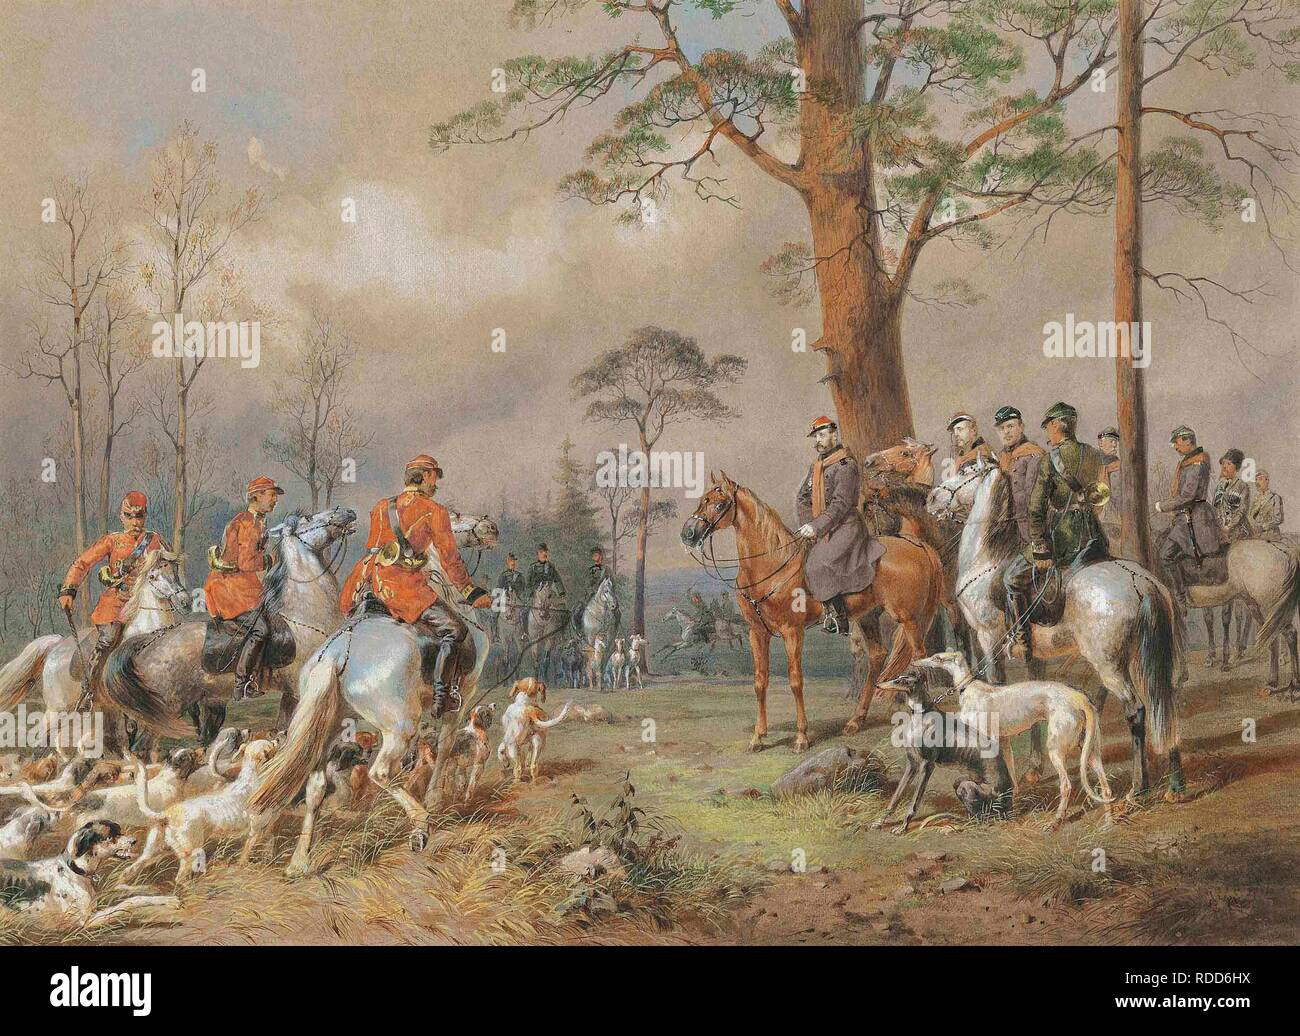 The hunting party of Emperor Alexander II. Museum: PRIVATE COLLECTION. Author: ZICHY, MIHALY VON. Stock Photo